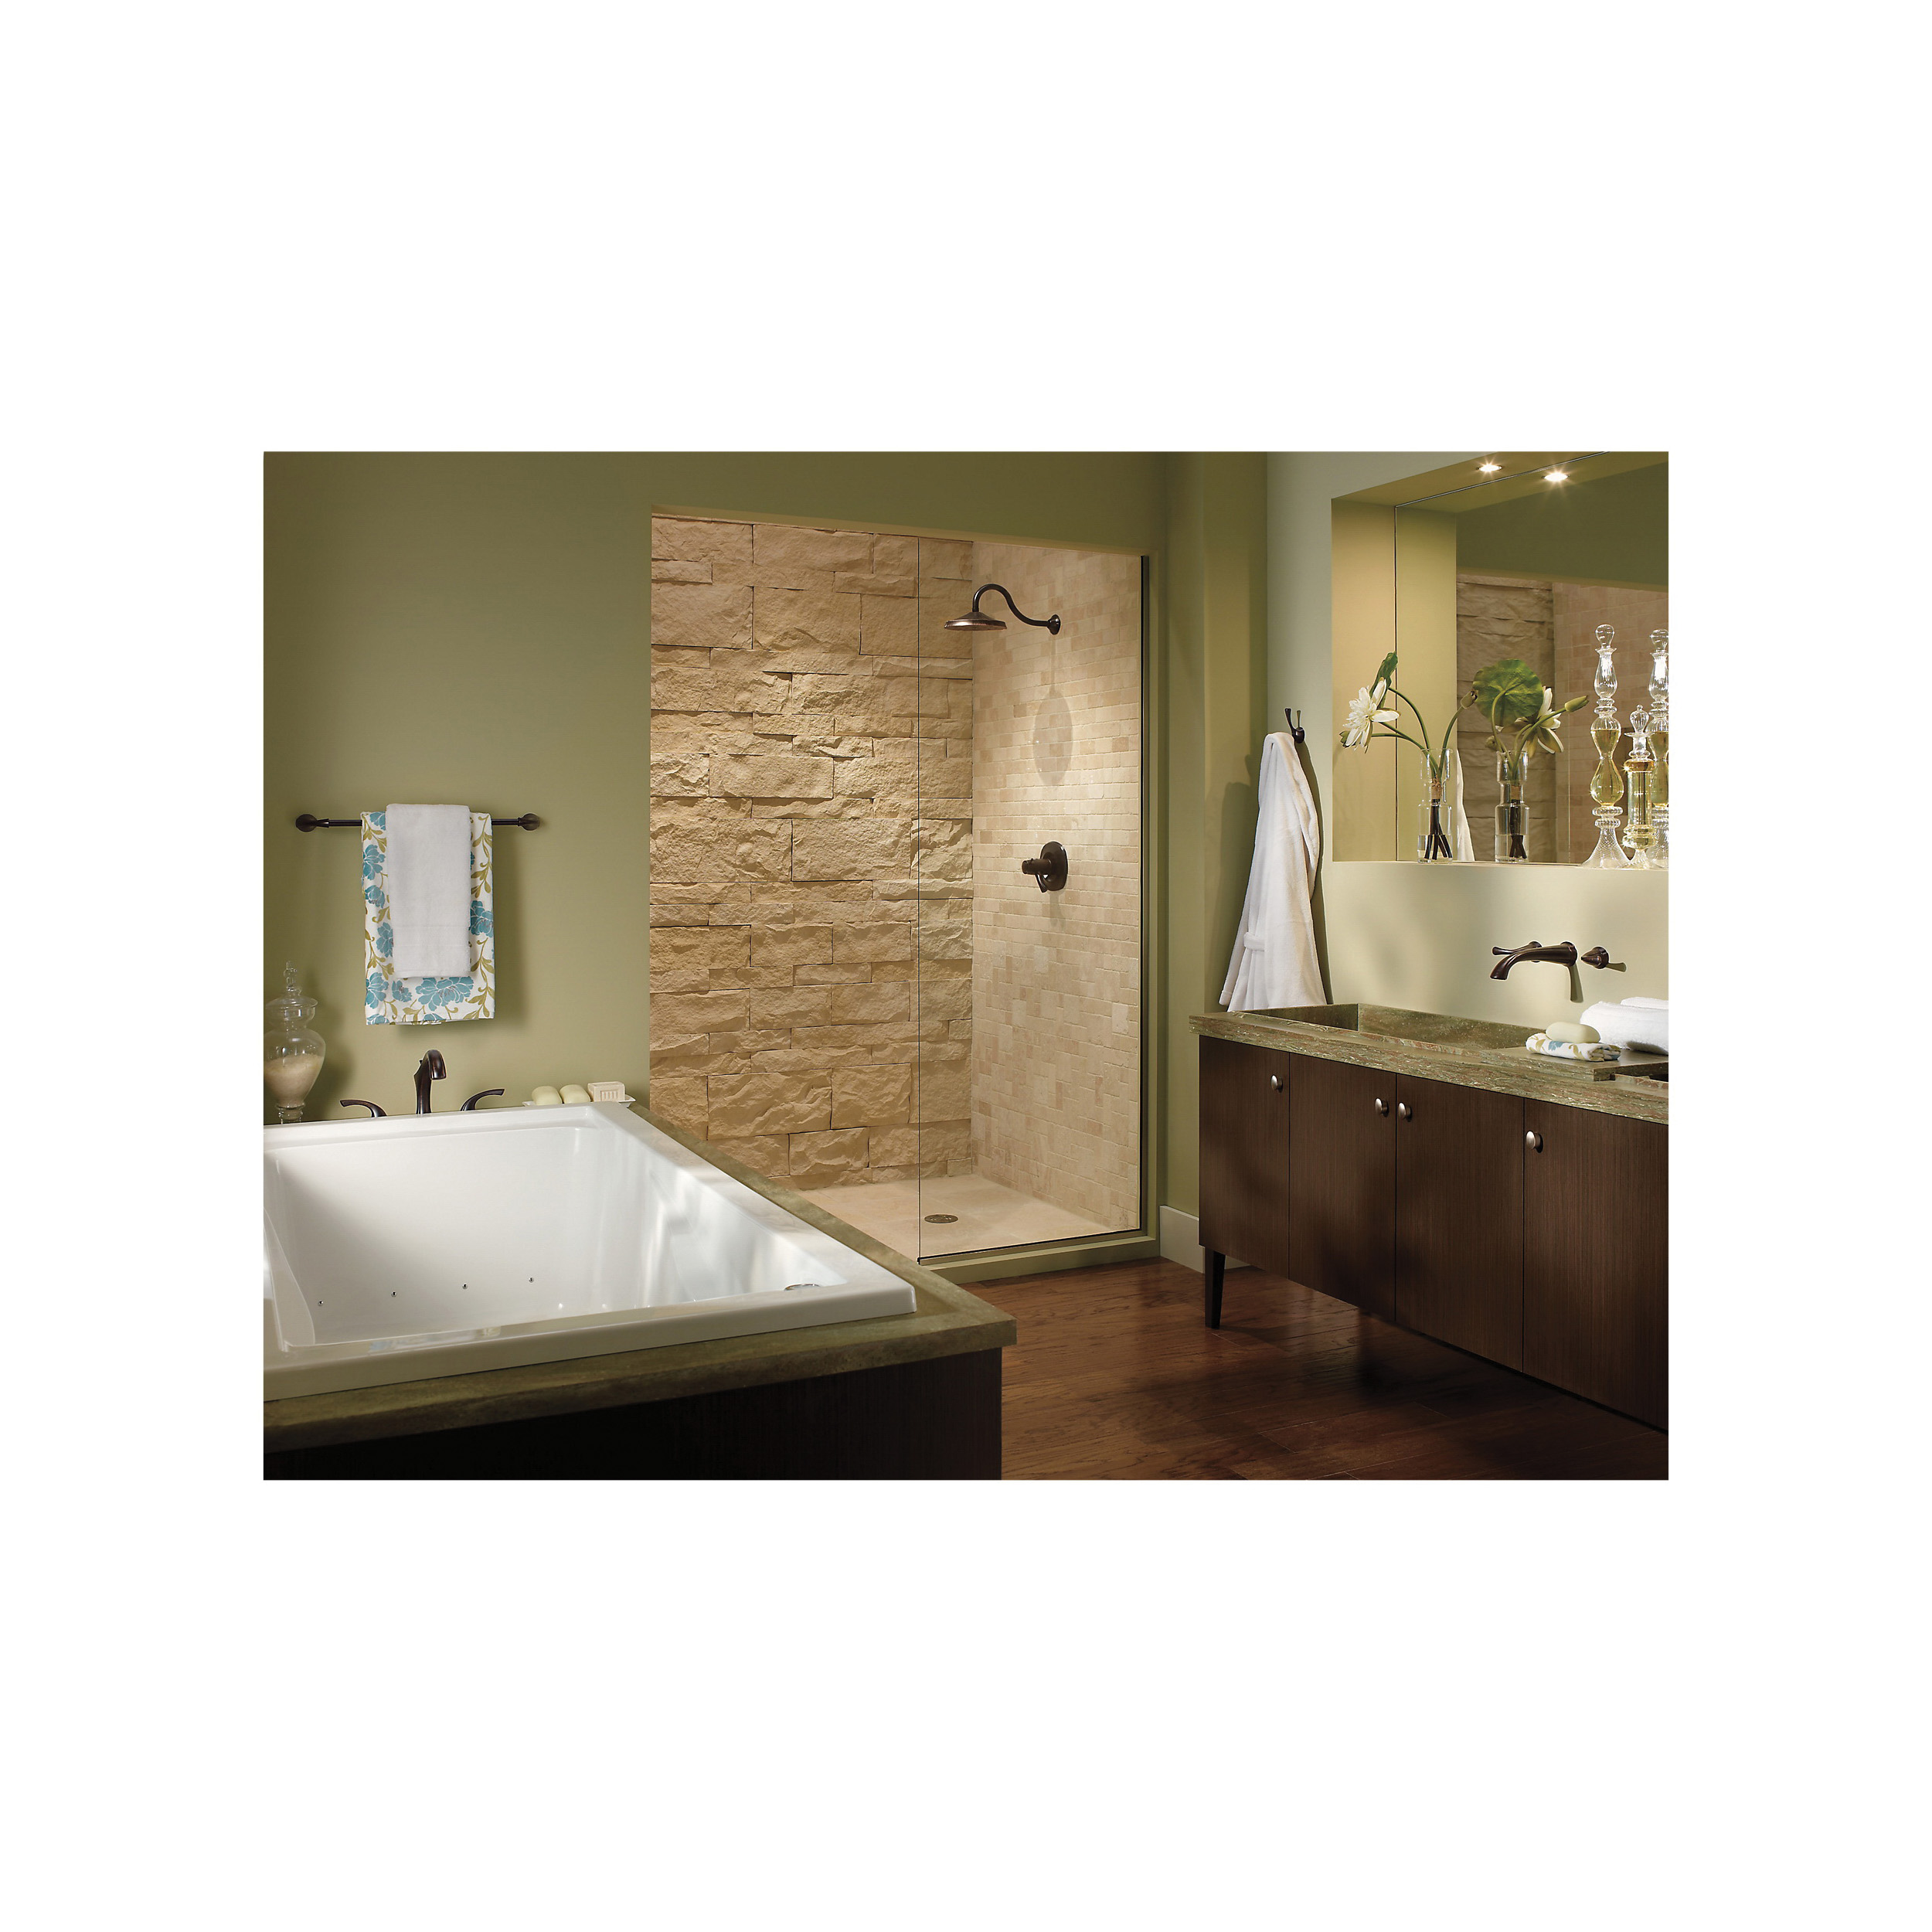 DELTA® T2792-RB Roman Tub Trim, Addison™, 18 gpm Flow Rate, 8 to 16 in Center, Venetian Bronze, 2 Handles, Function: Traditional, Import